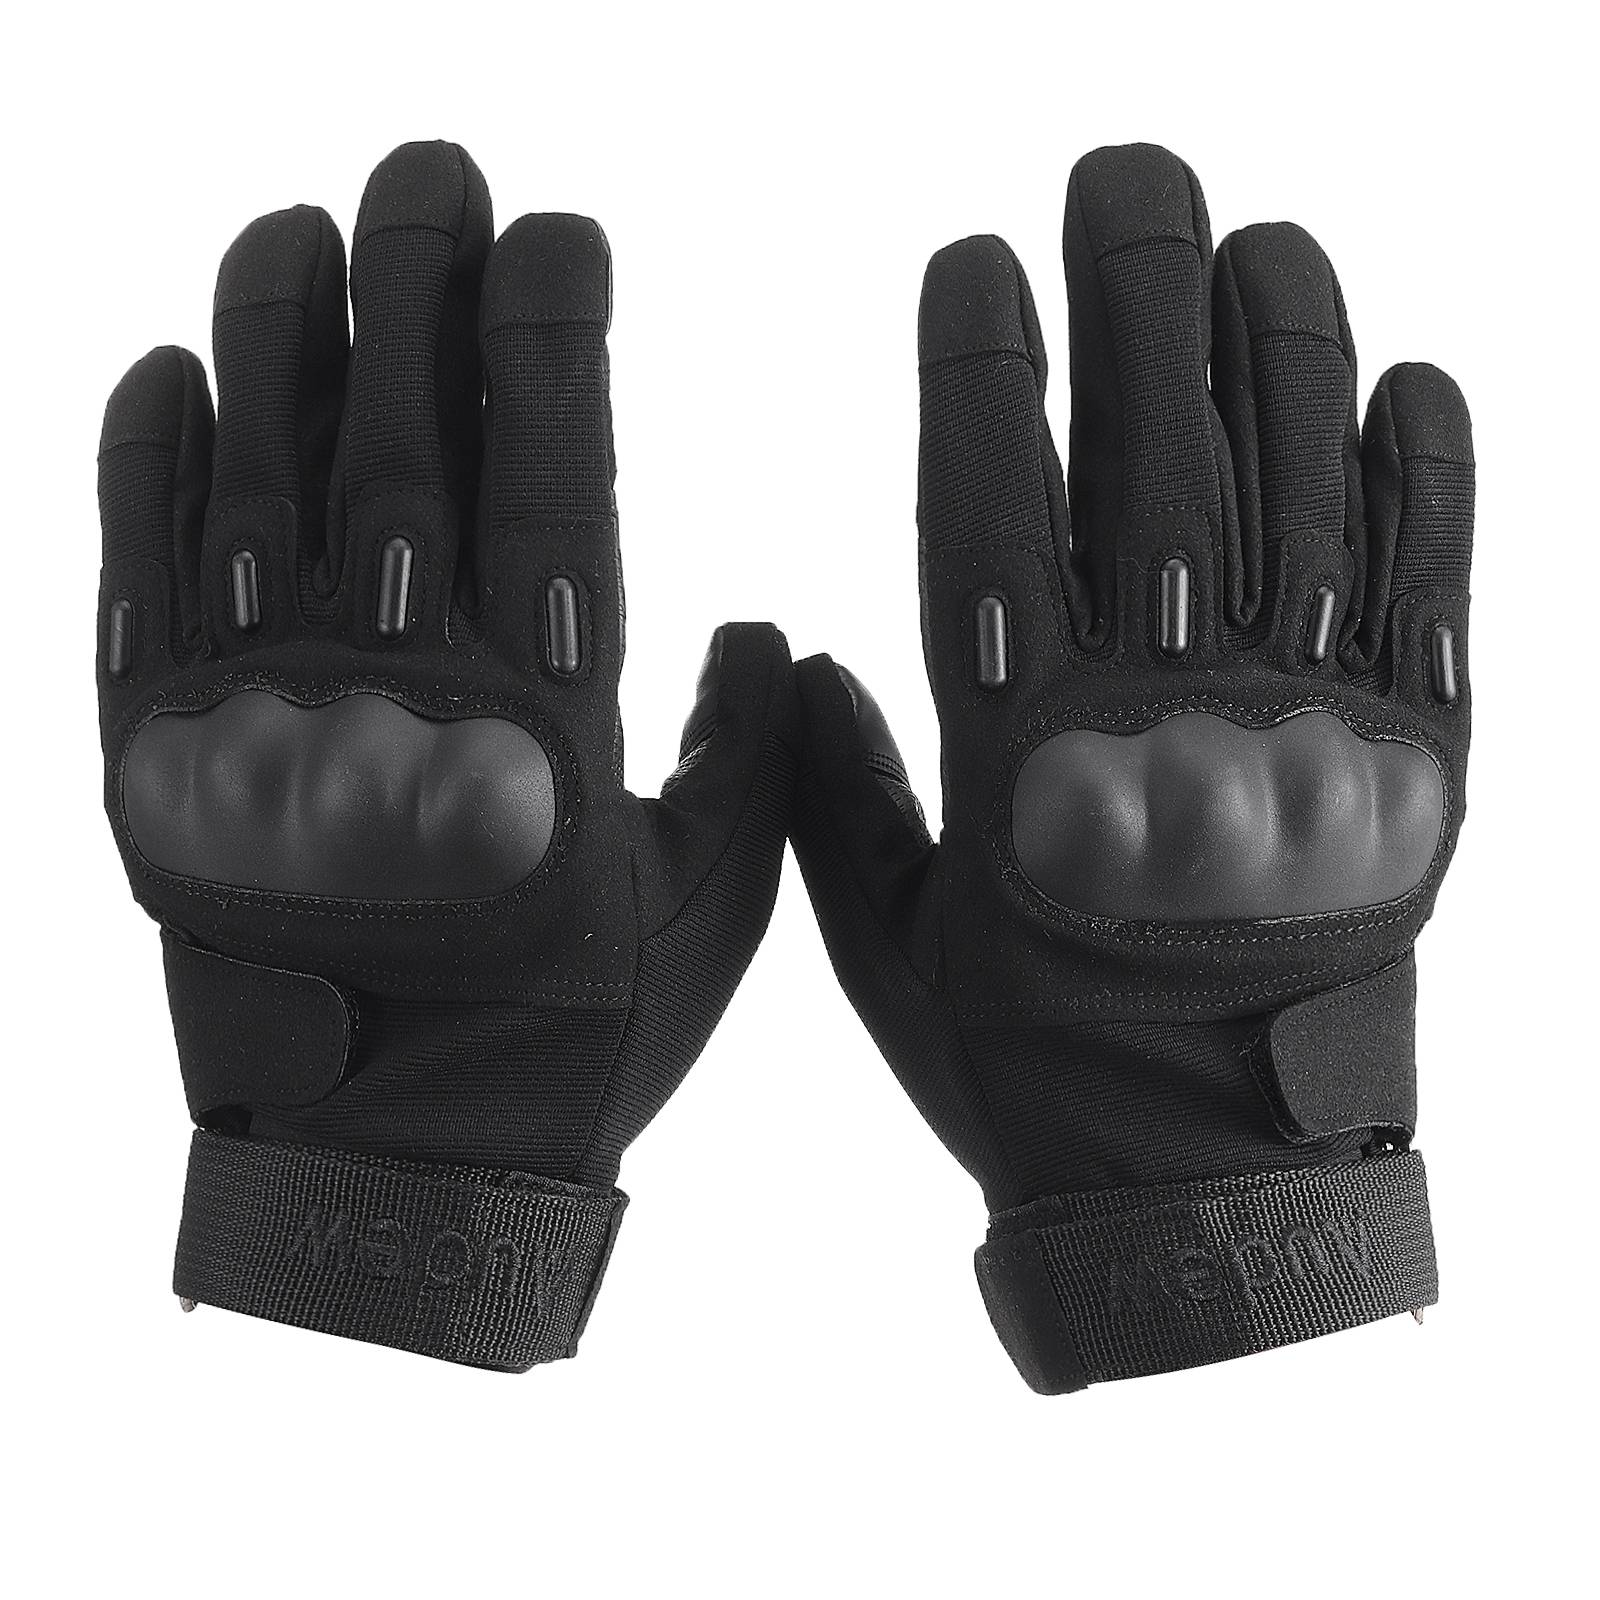 Audew Full Finger Hard Knuckle Motorcycle Military Tactical Combat Training Army Shooting Outdoor Gloves